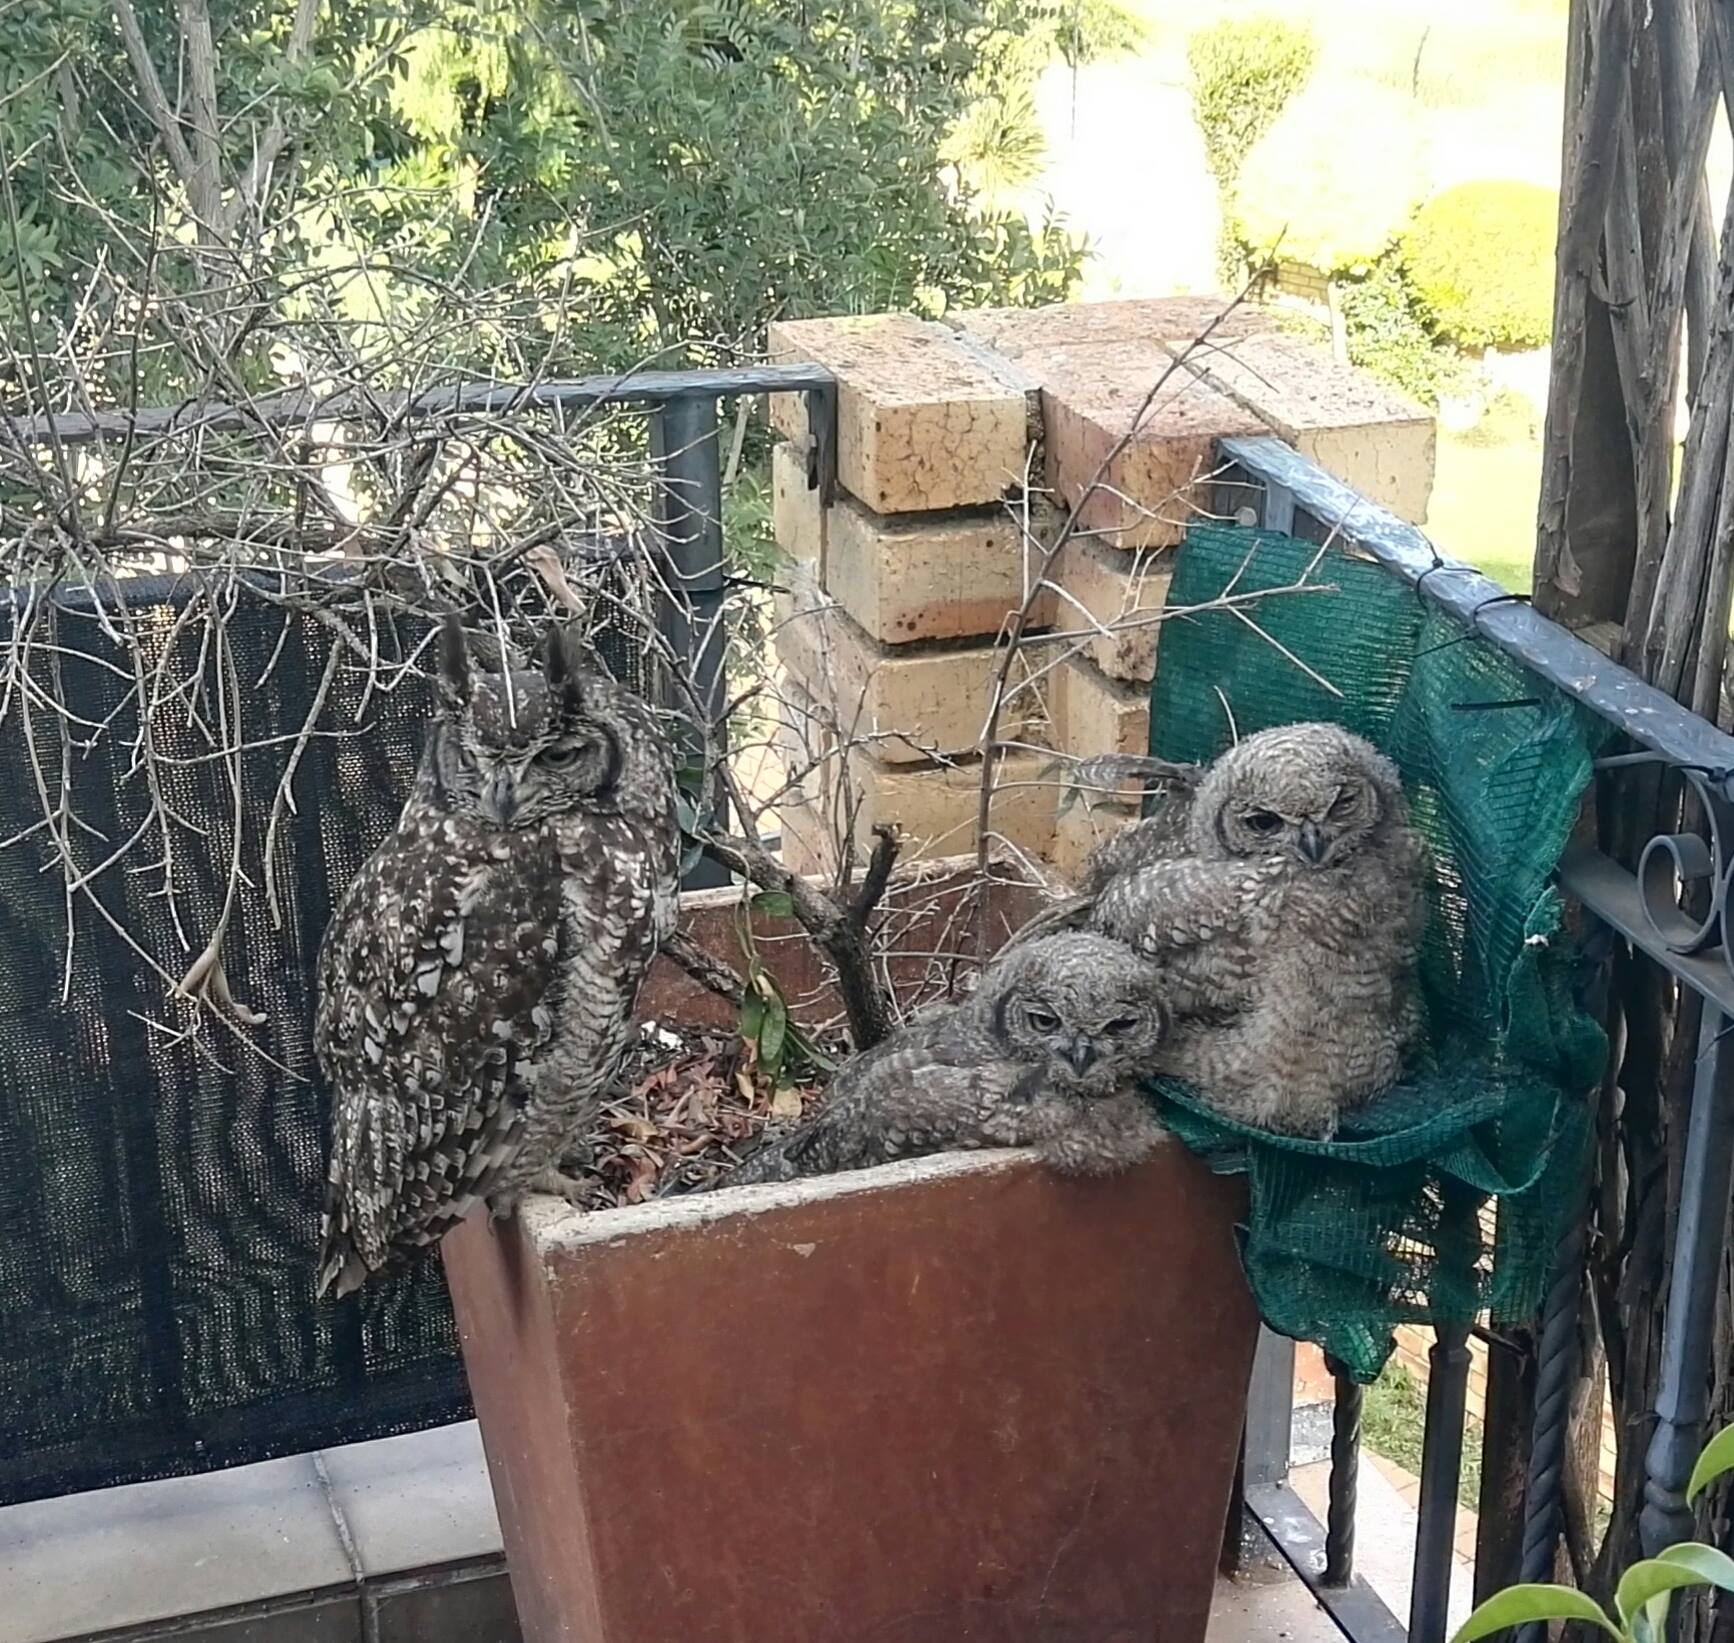 Lady and her owlets 16 Dec. 2018.jpg